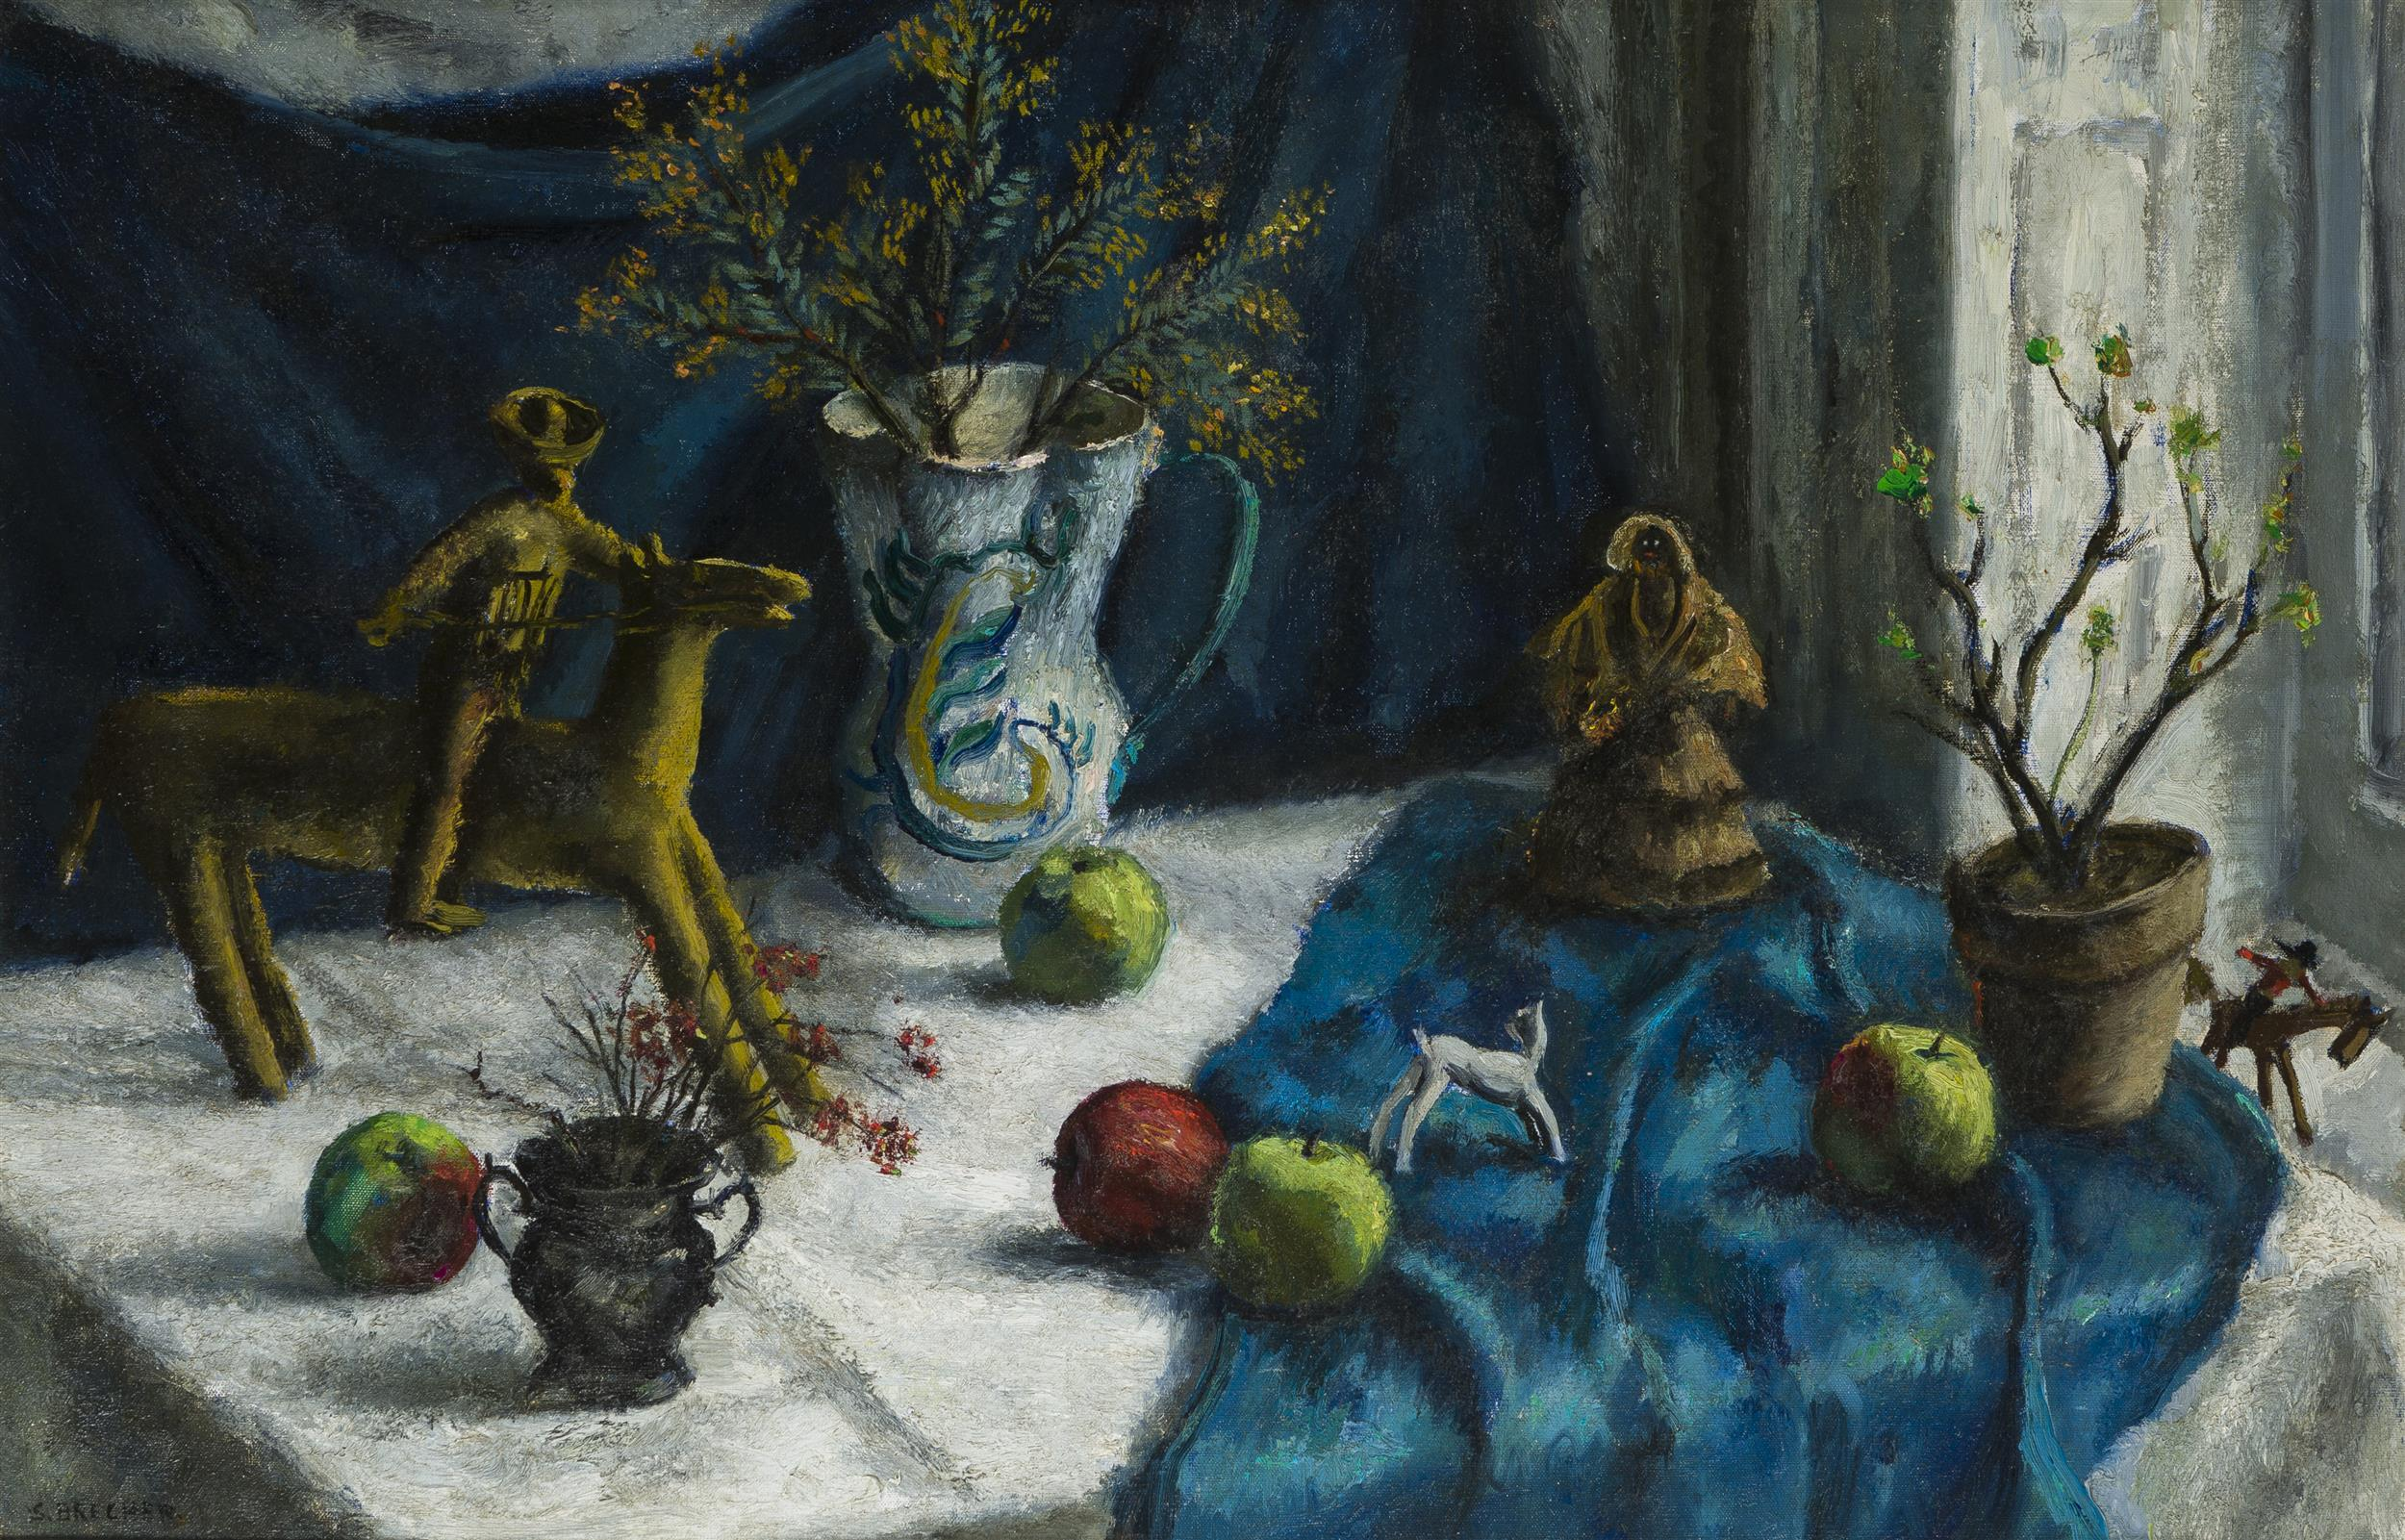 "Samuel Brecher, (1897-1982 New York, NY), Still life with fruit and dolls, Oil on canvas laid to canvas, 25"" H x 38.5"" W"